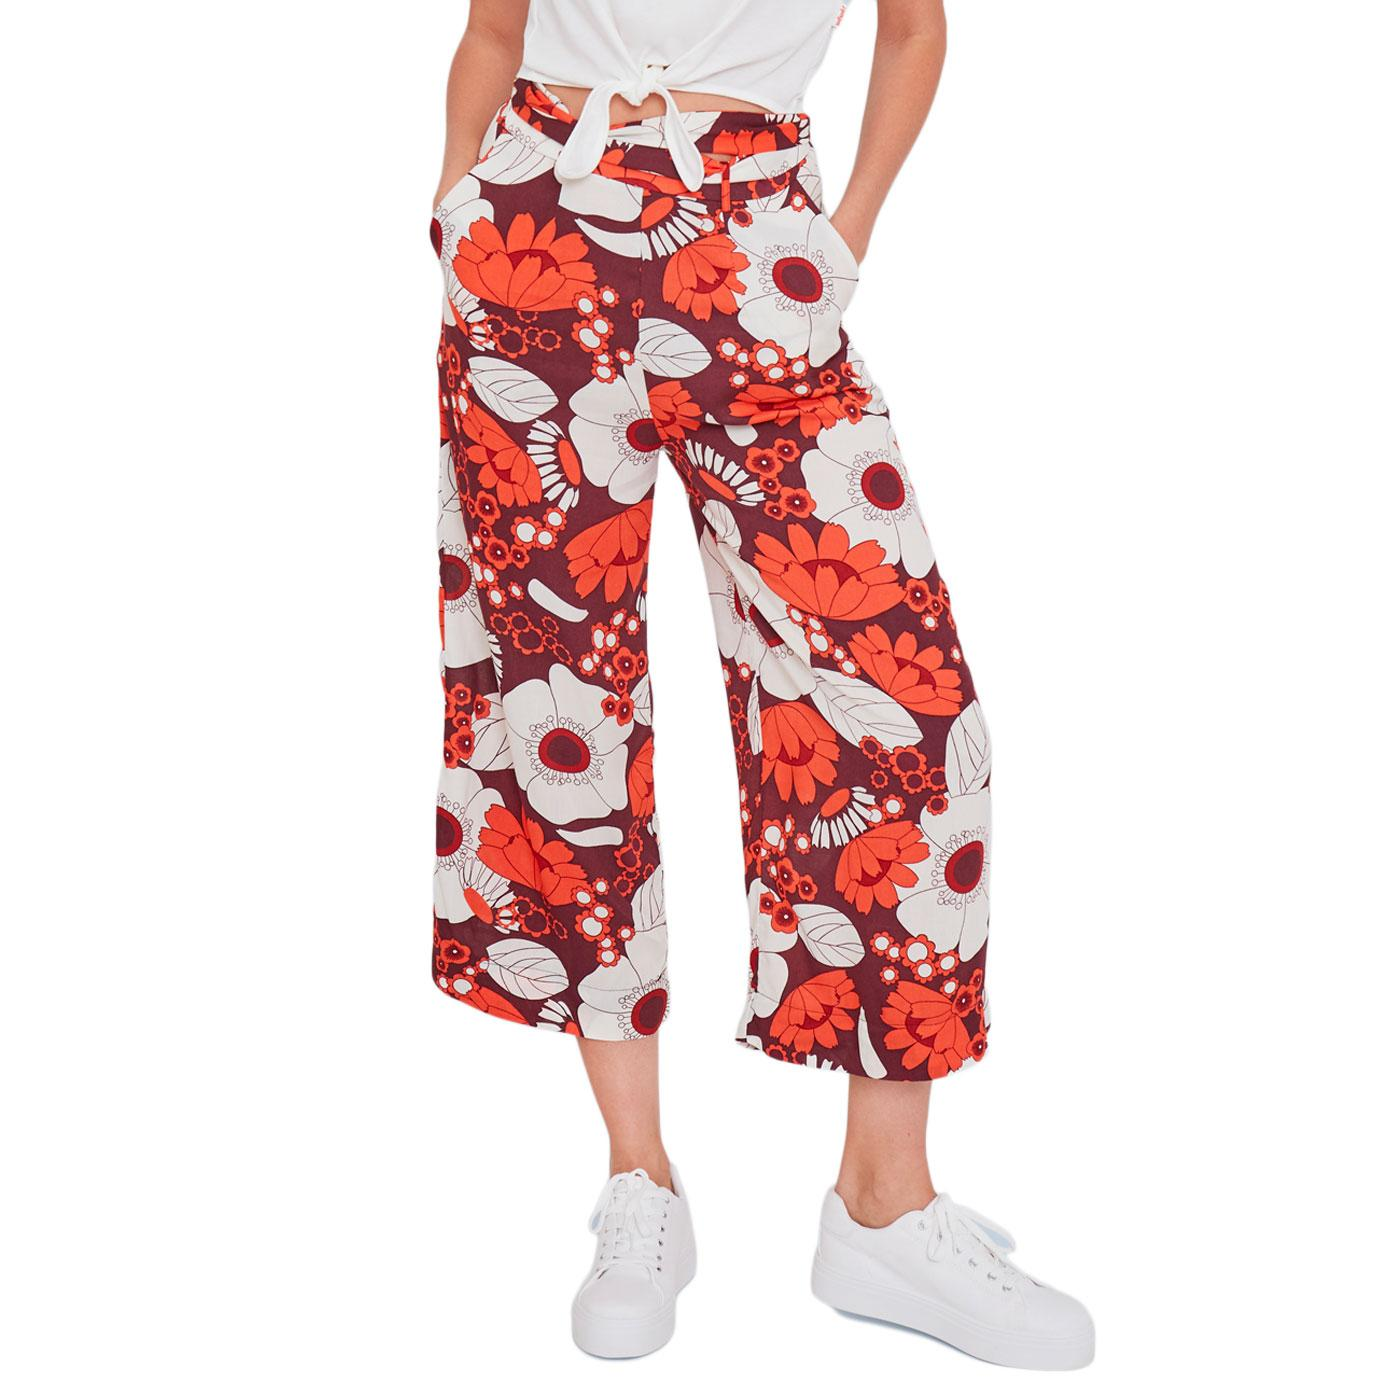 A New Idea MADEMOISELLE YEYE Retro Floral Trousers